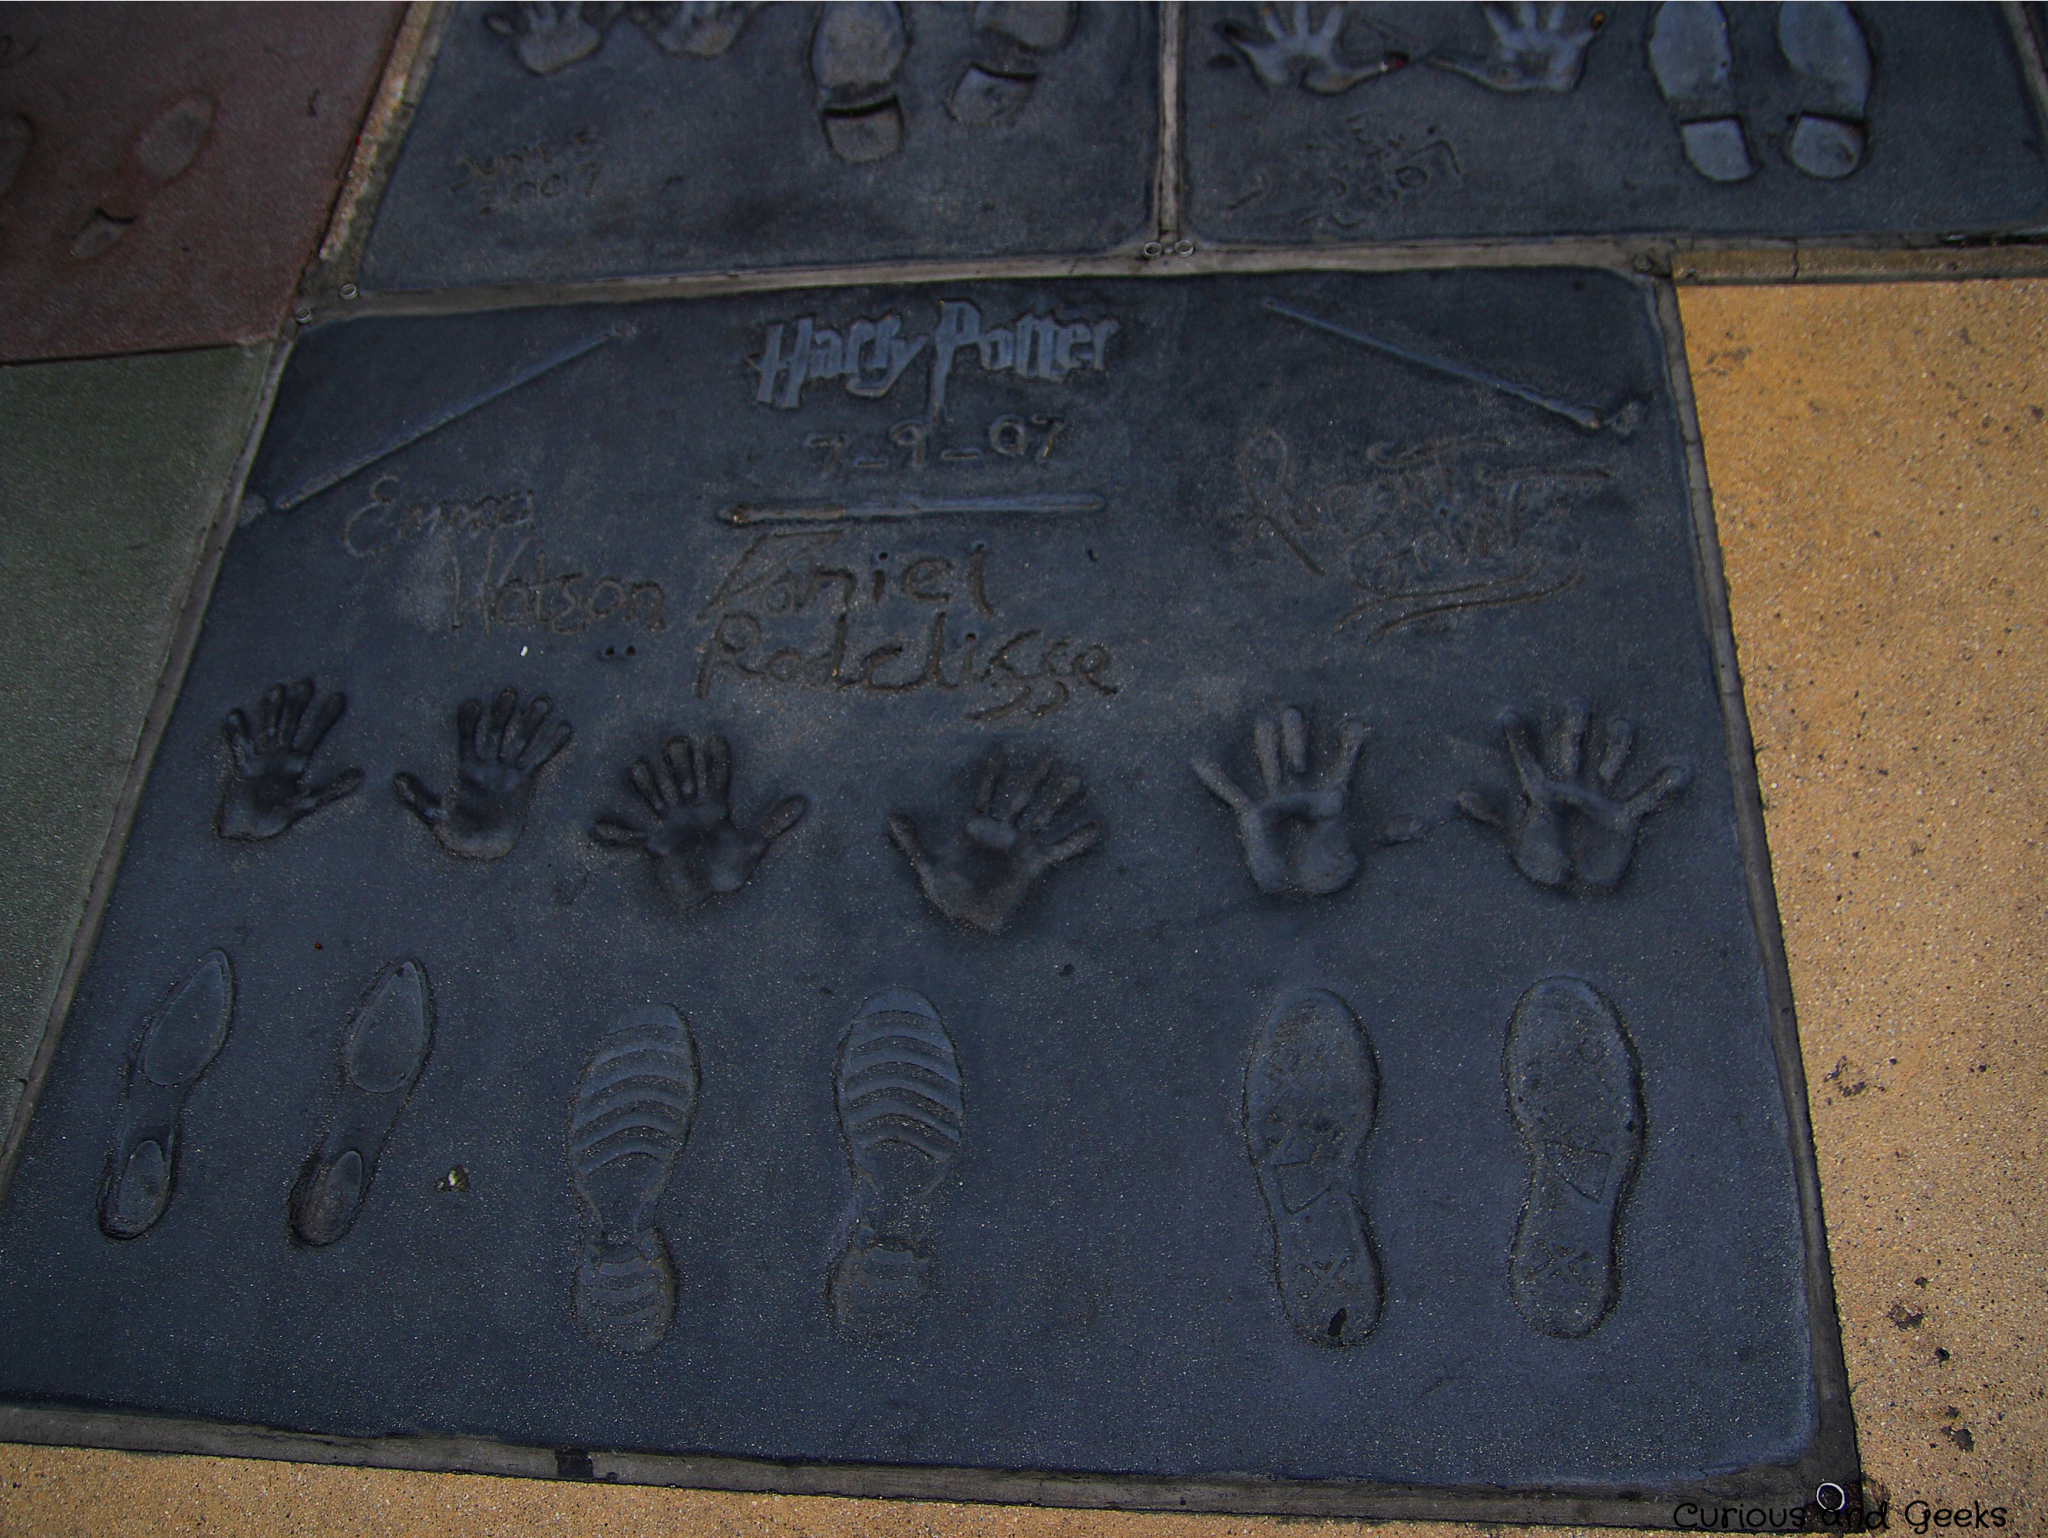 Harry Potter crew stars in Hollywood